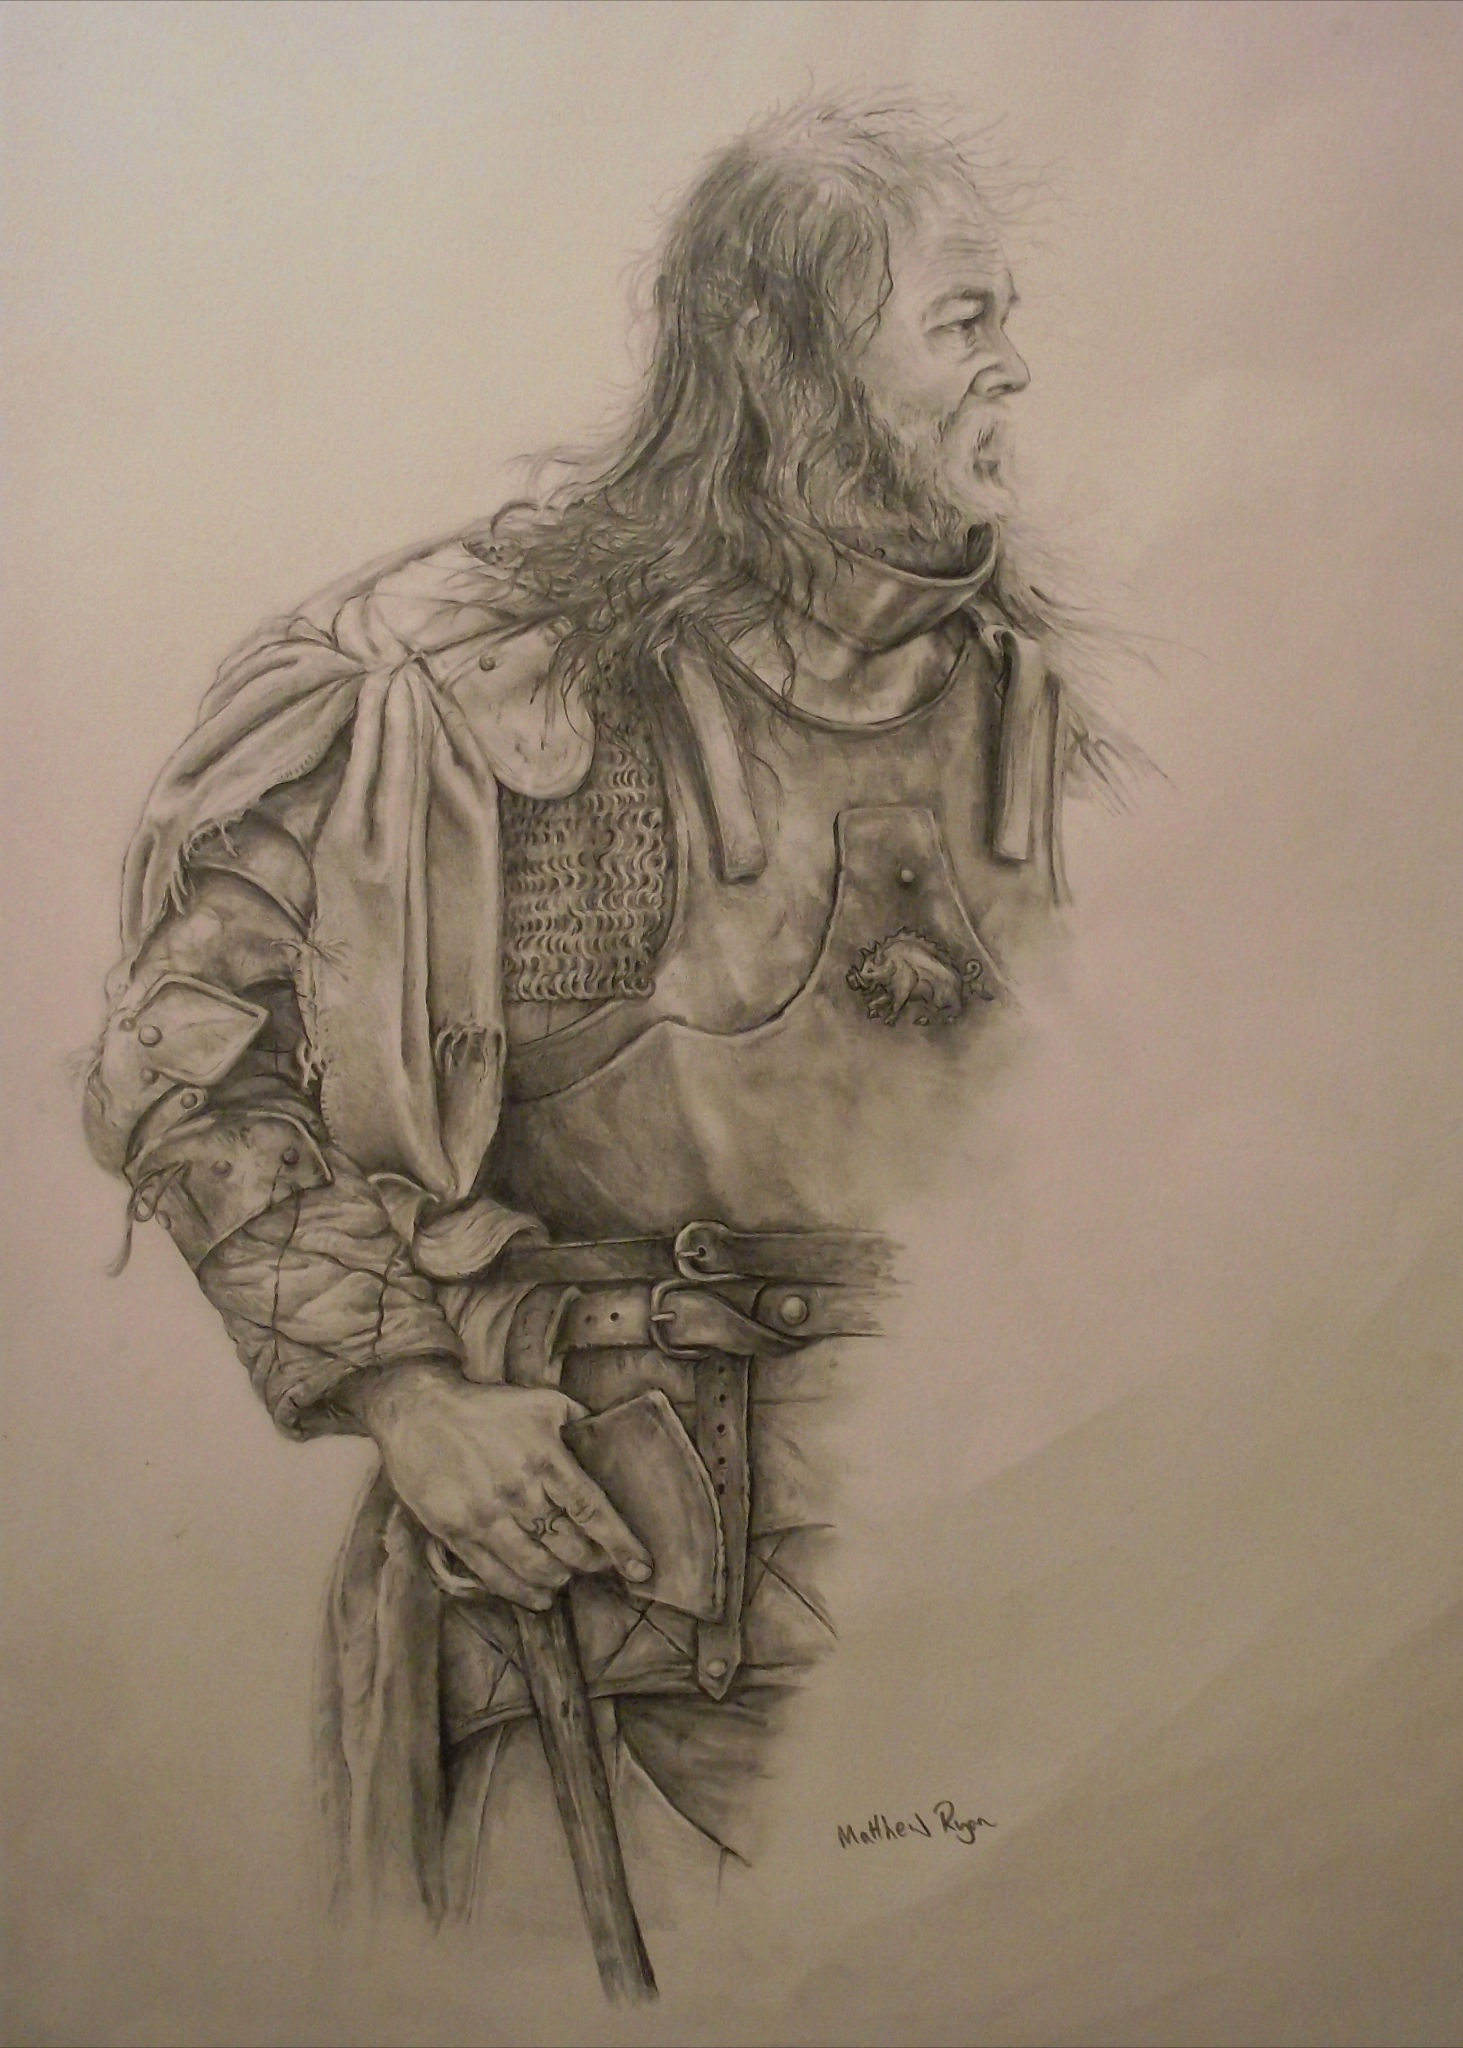 King Richard III's man at the Battle of Bosworth